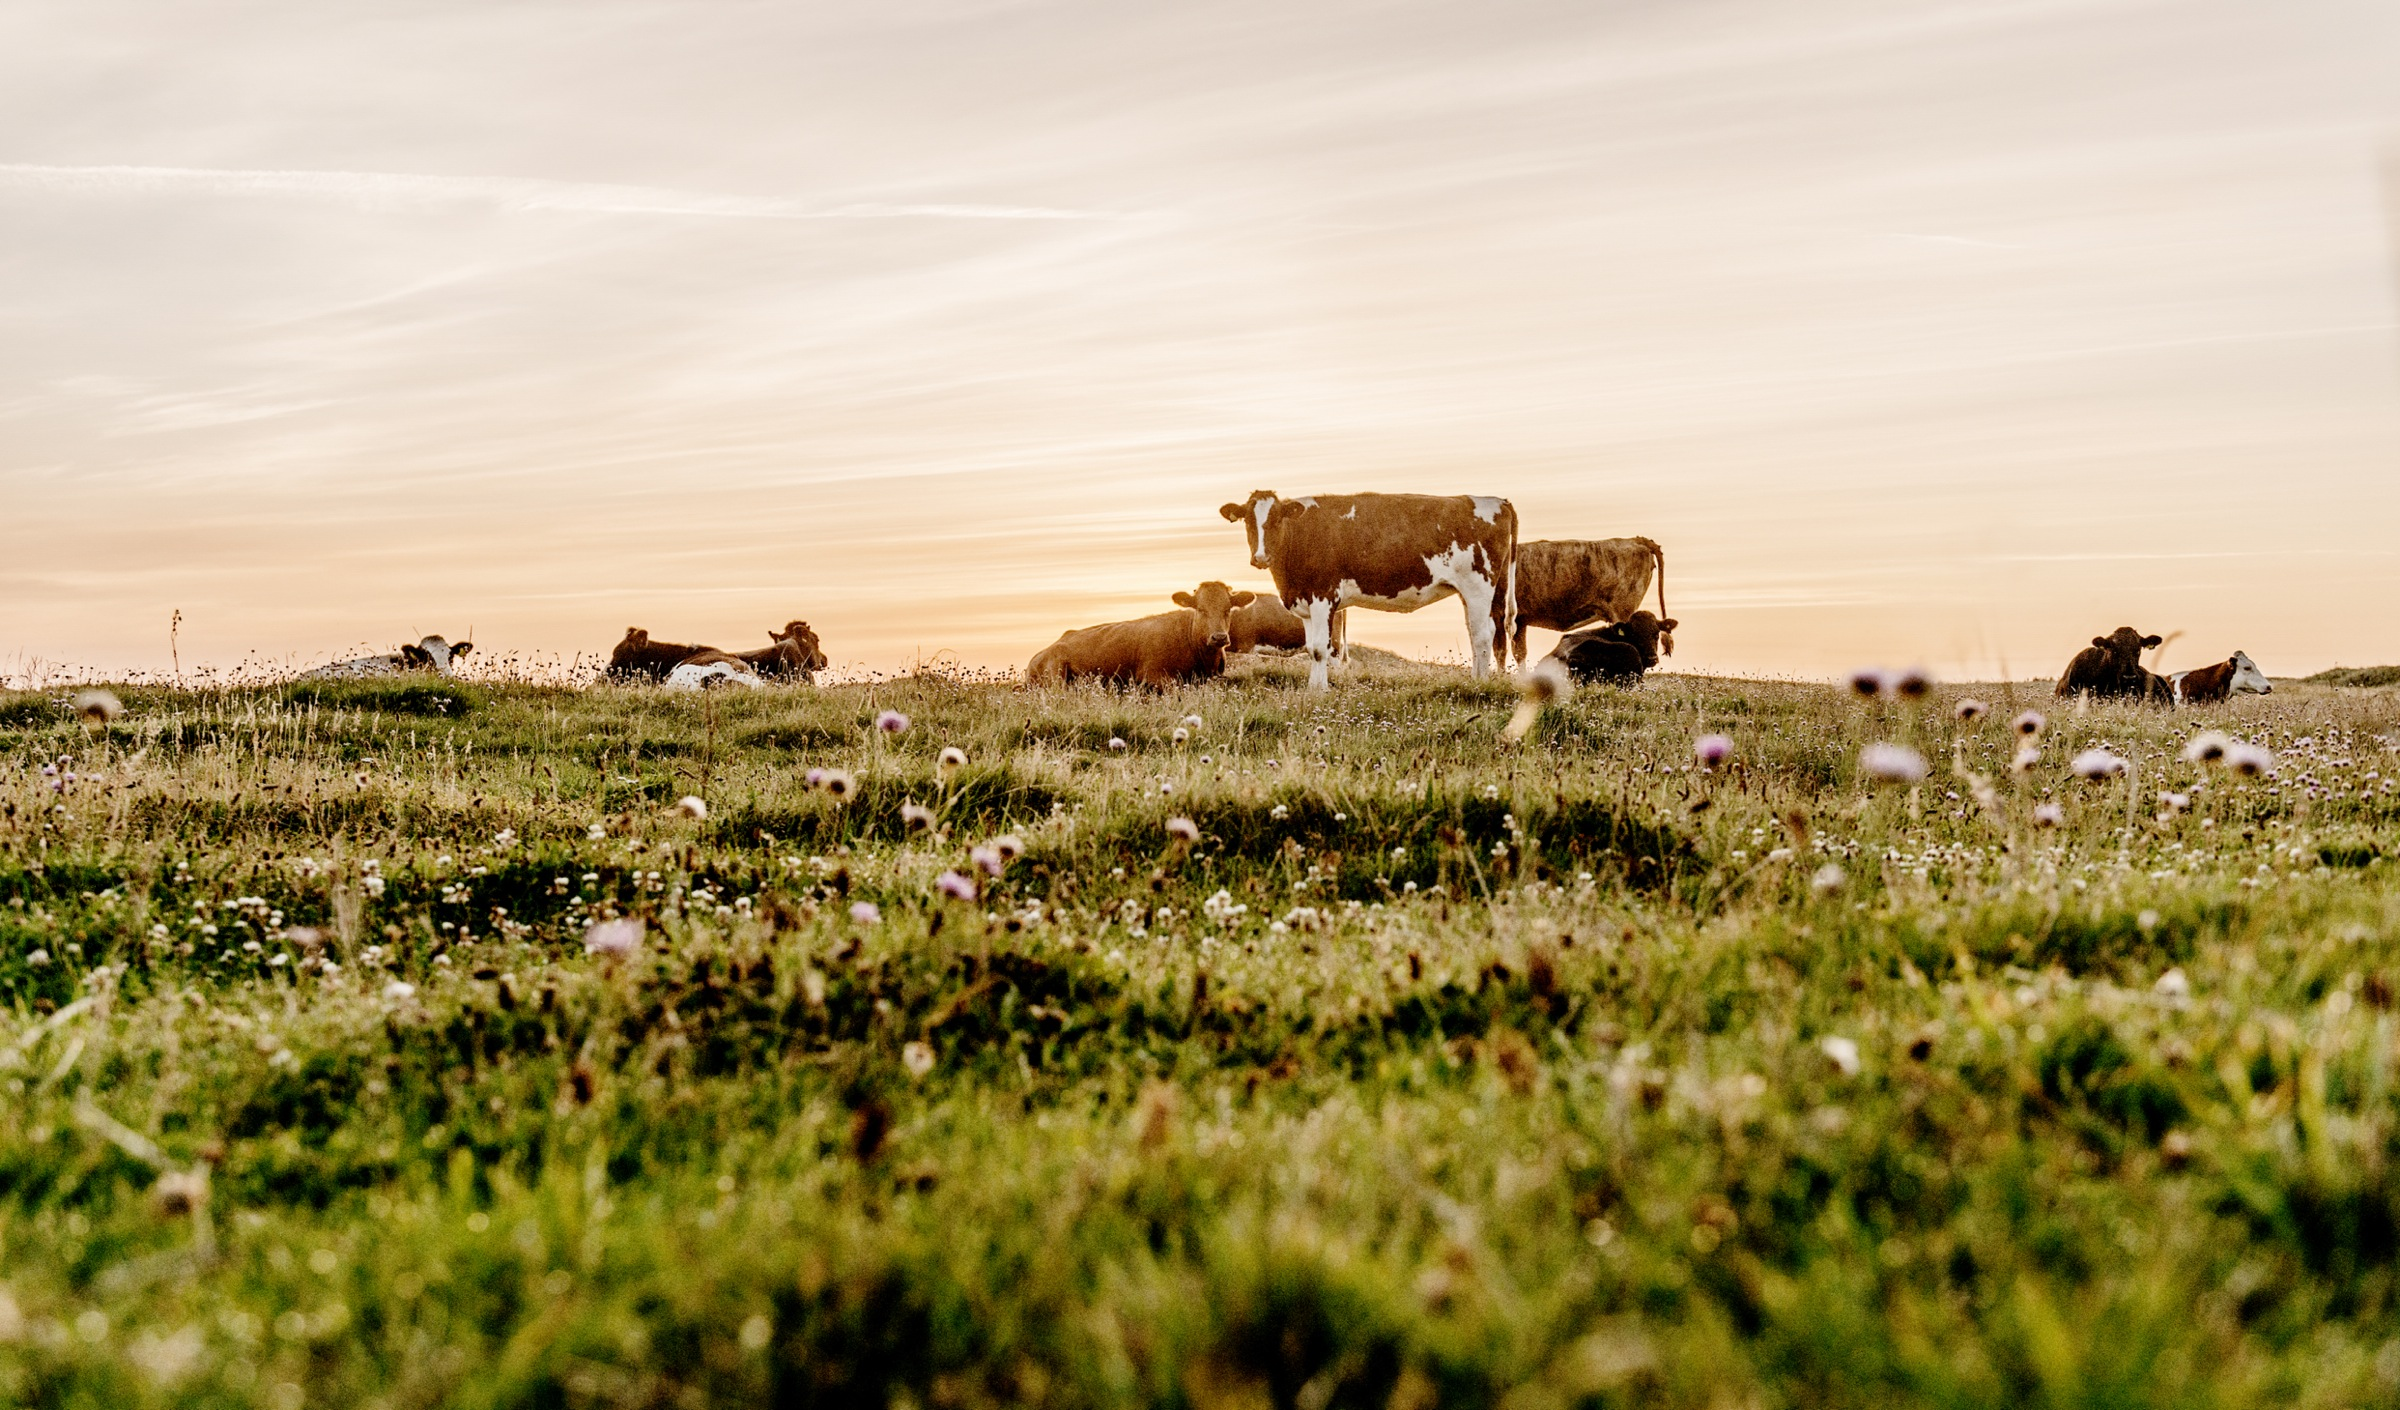 Danish_dune_heath_landscape_with_cows-4_original.jpg